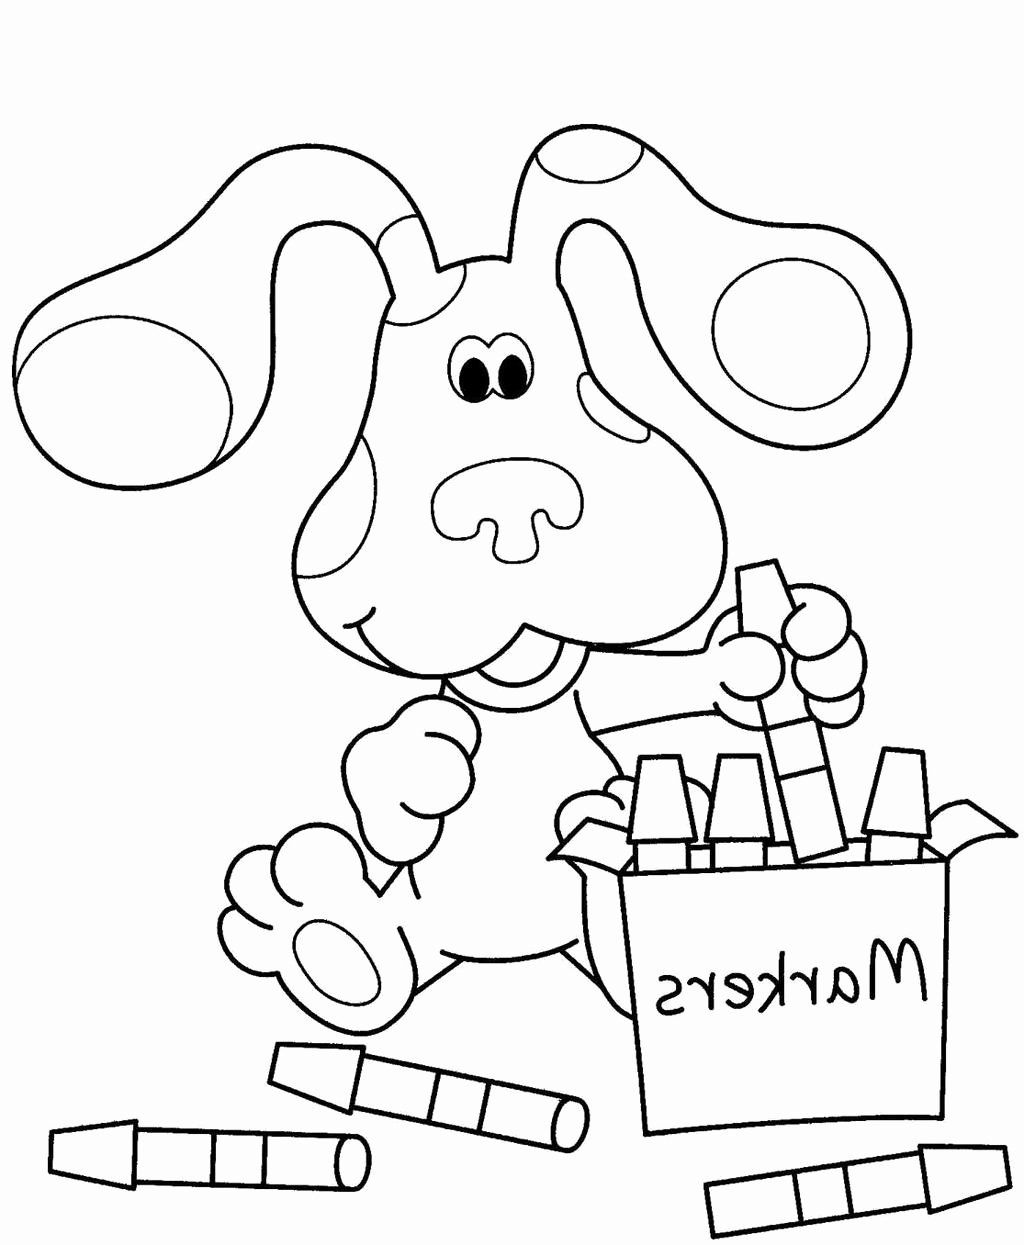 Nick Jr Coloring Book Fresh Nickelodeon Coloring Pages